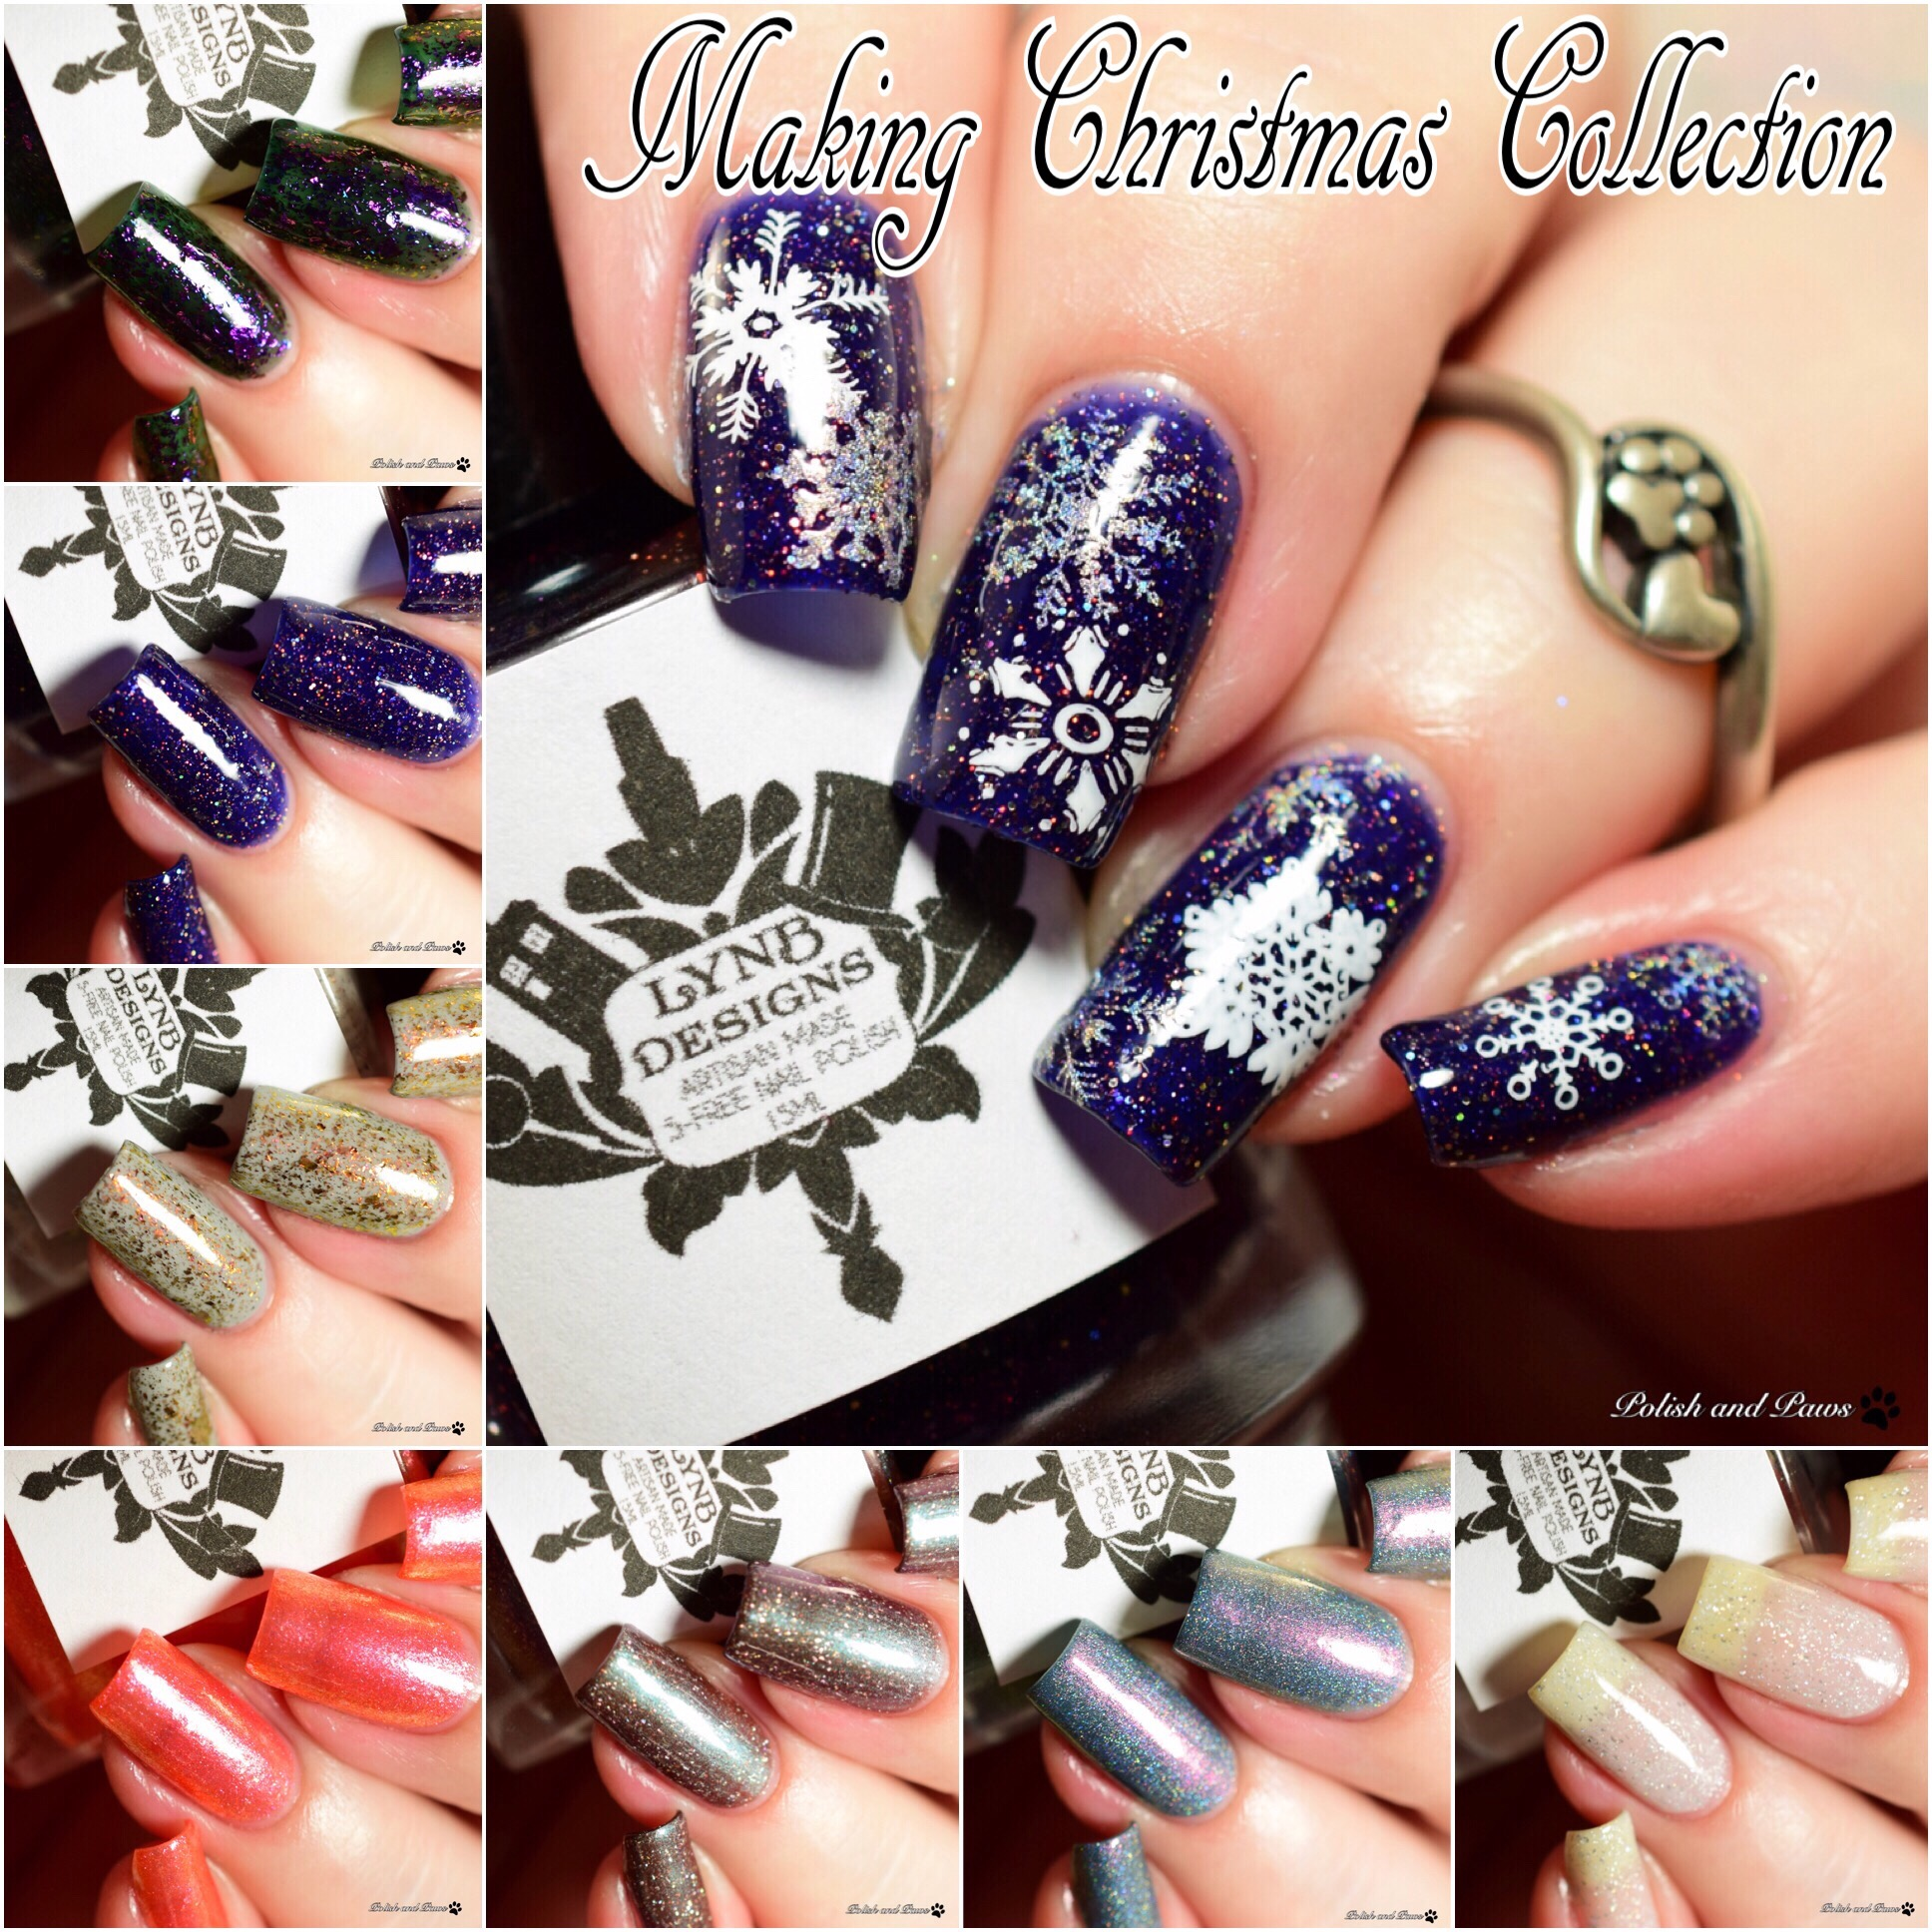 LynB Designs Making Christmas Collection